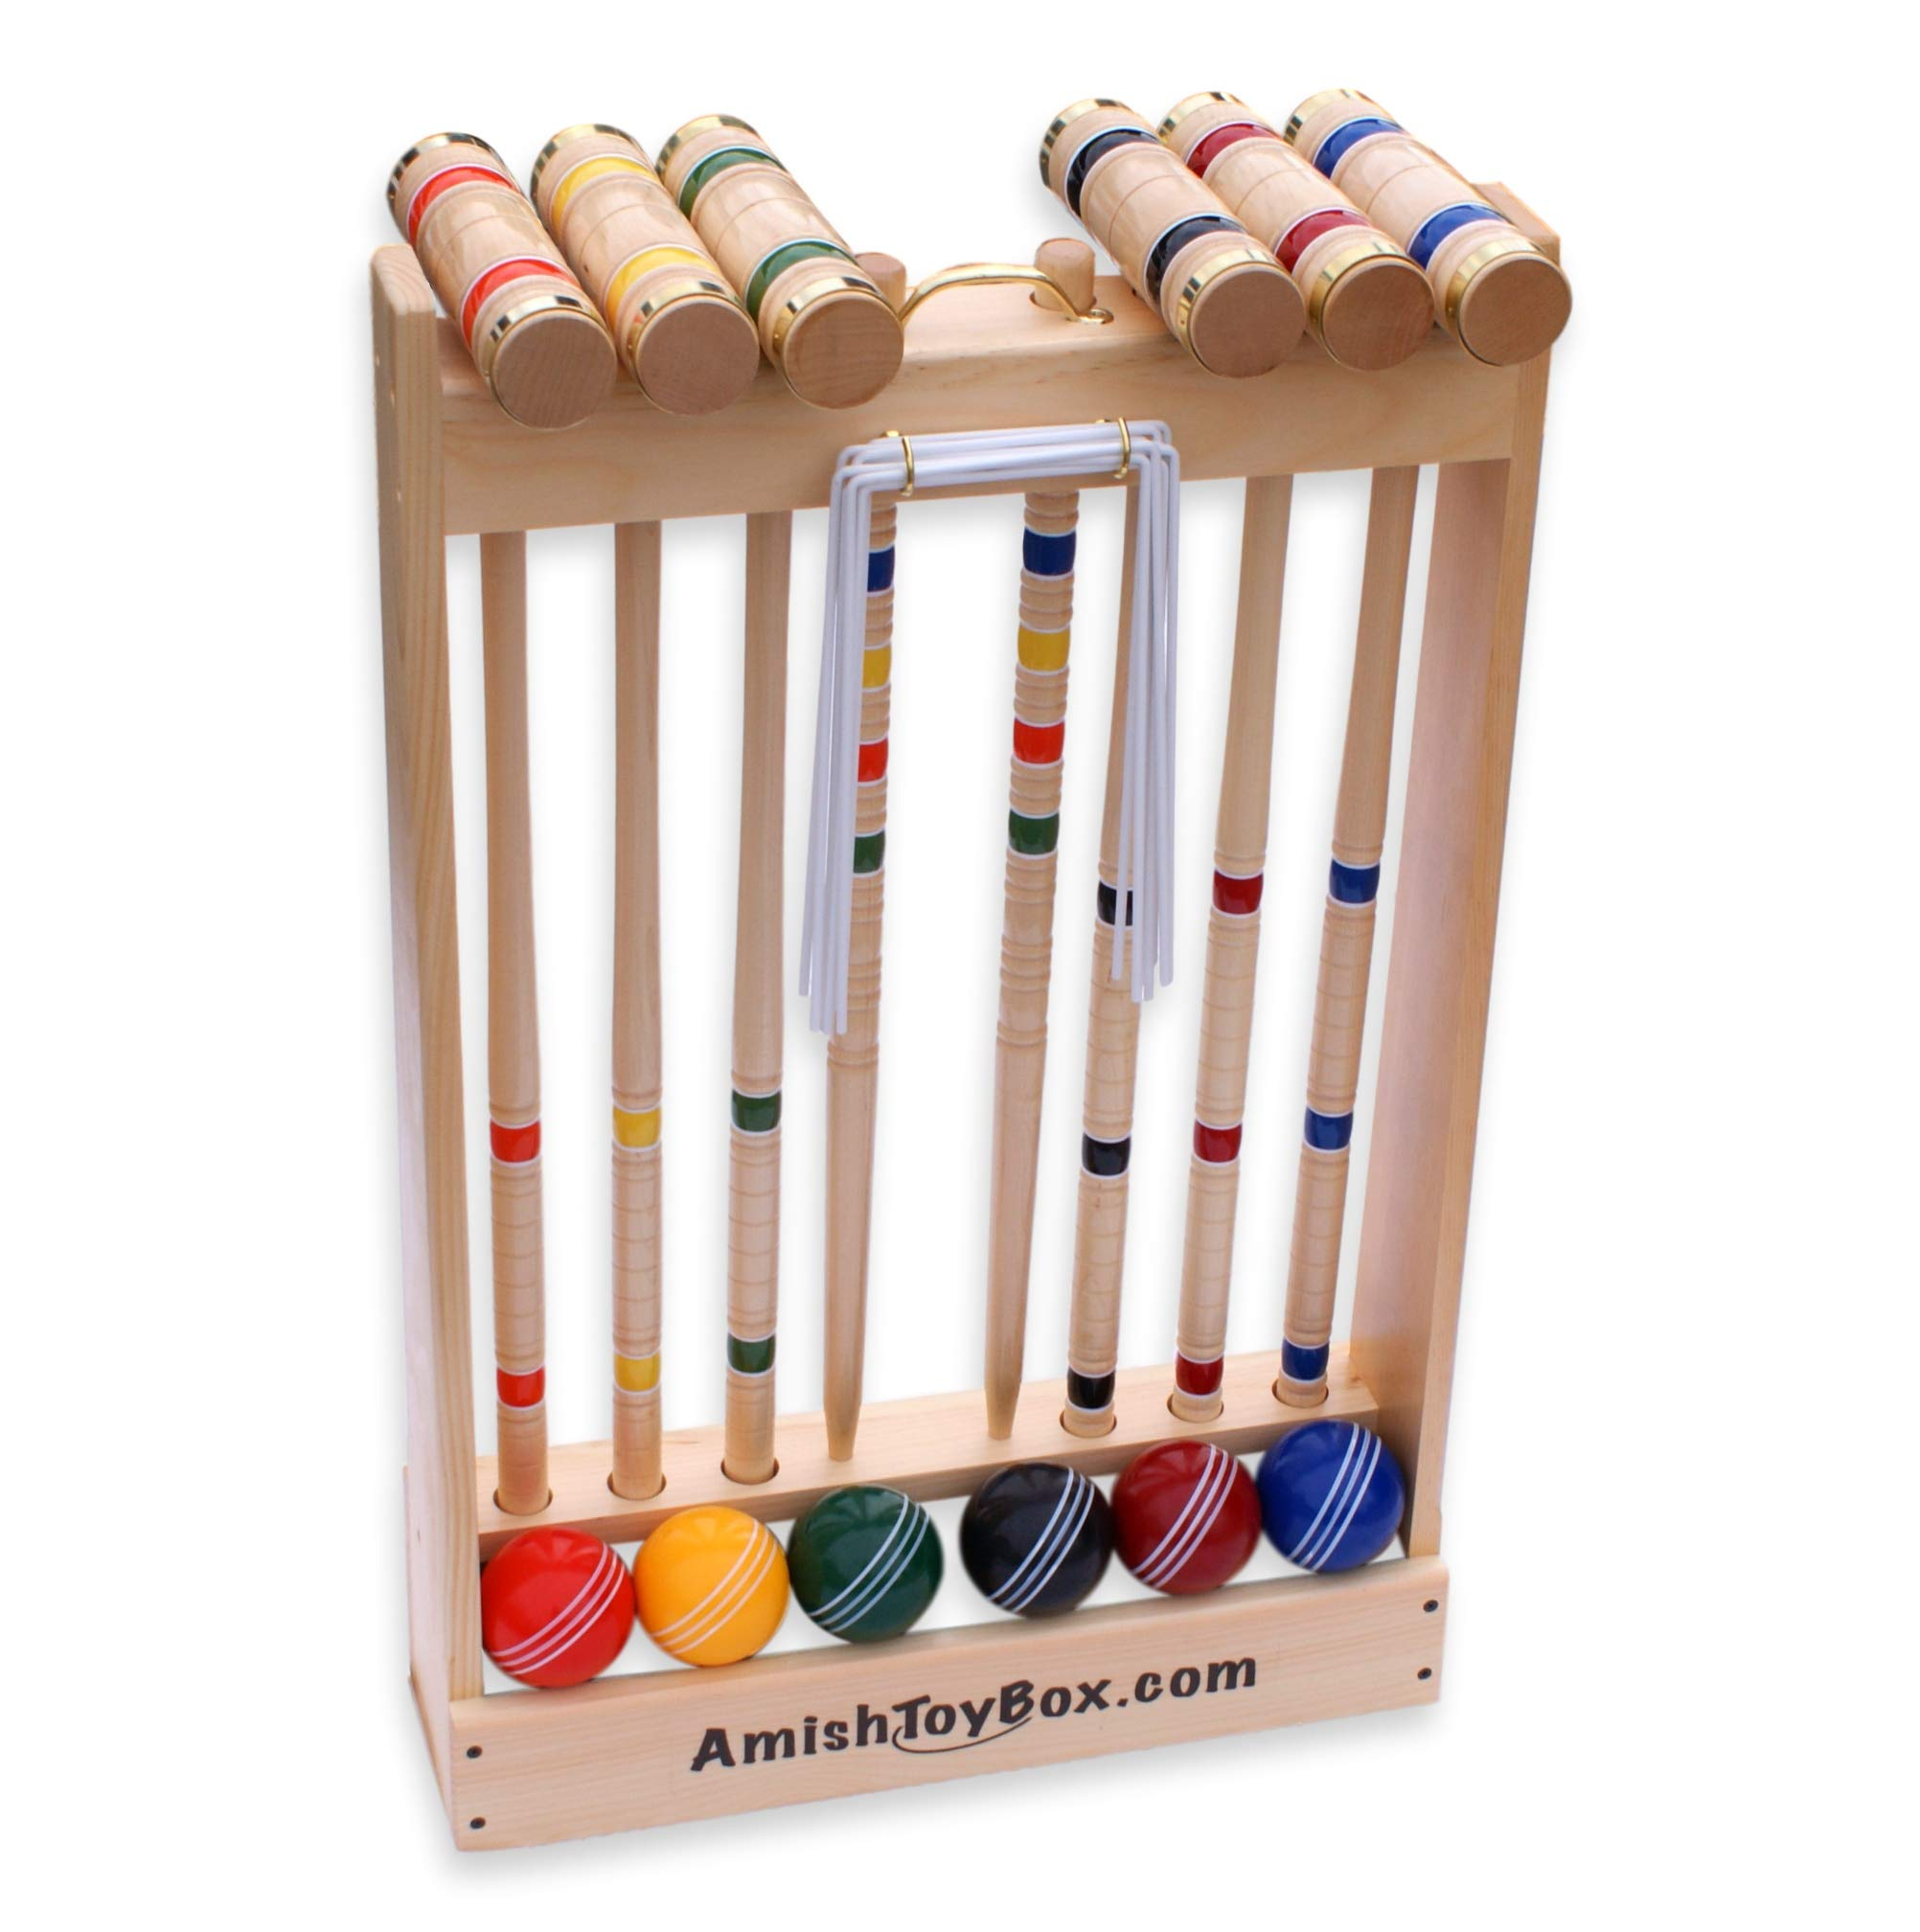 Amish-Crafted Deluxe Maple-Wood Croquet Game Set, 6 Player (Three 28'' Handles/Three 32'' Handles) by AmishToyBox.com (Image #3)